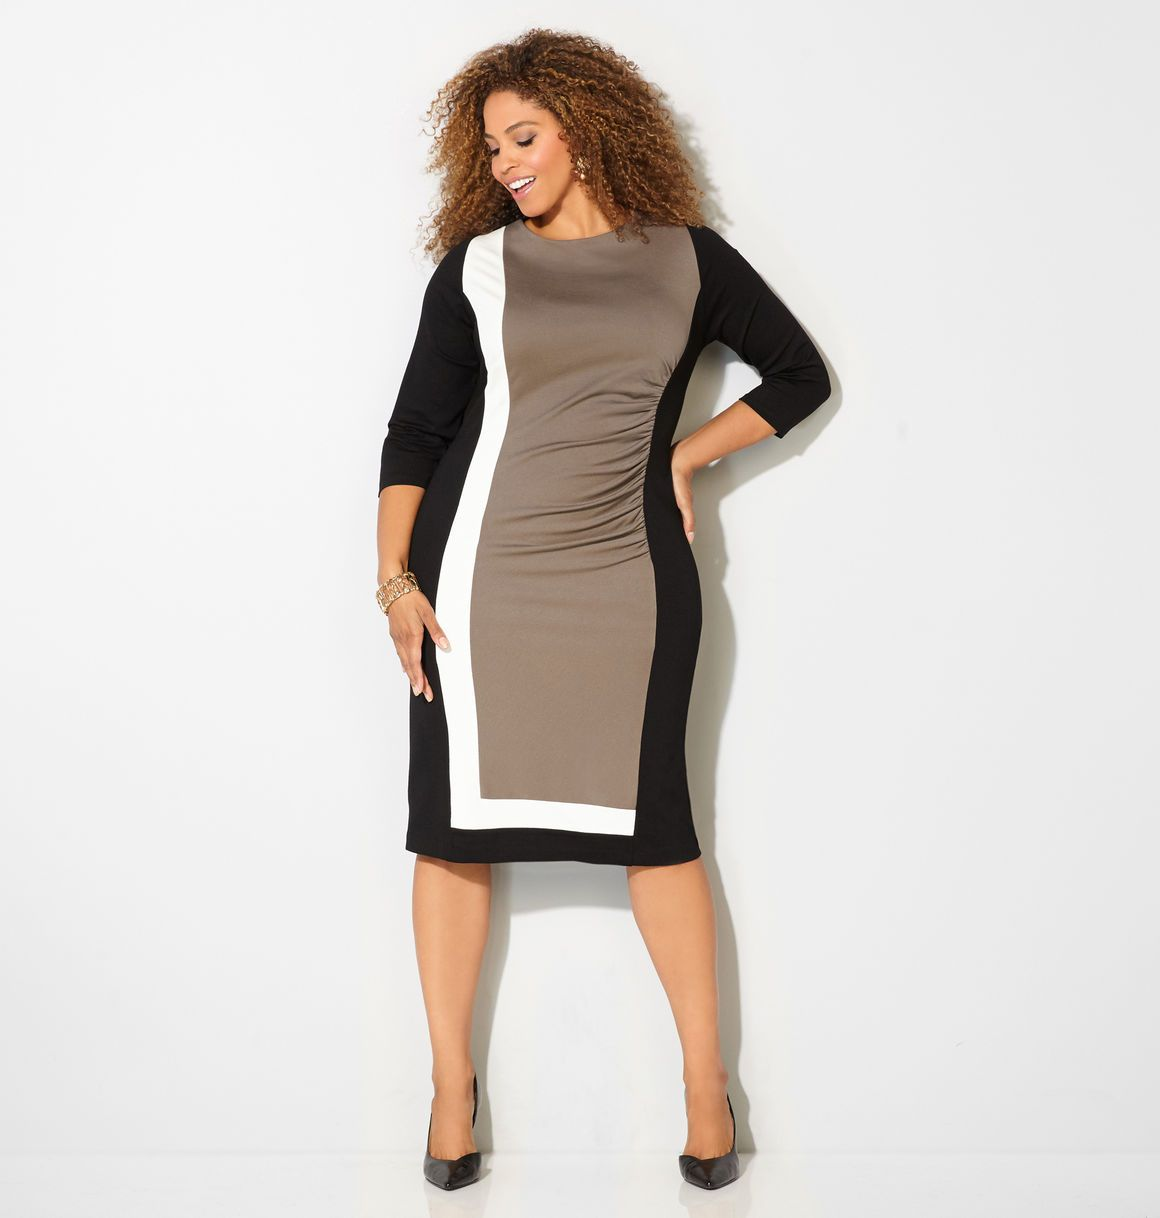 Shop beautiful new fall dresses in sizes 14-32 like the Colorblock Ponte  Dress available online at Traveller Location. Avenue Store